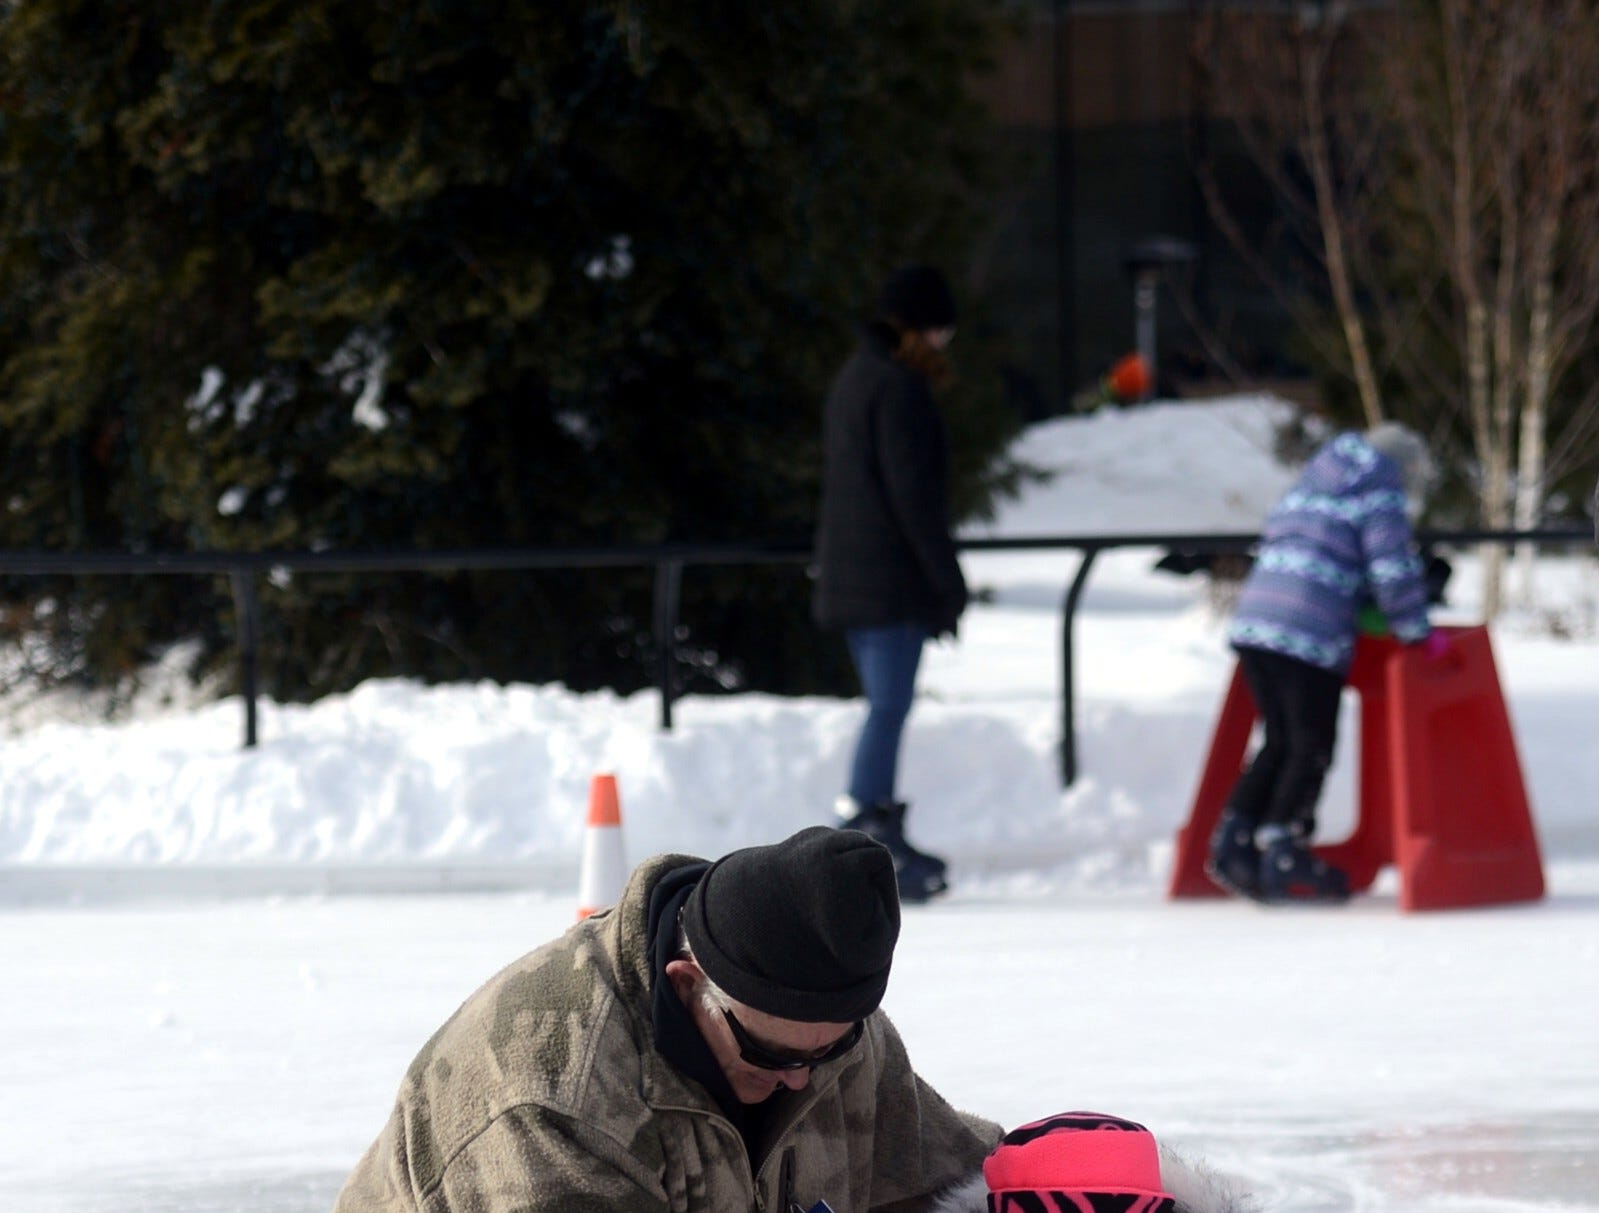 Caitlyn LaFond, 6, of Green Bay tries curling during the Titletown Winter Games on Saturday, Feb. 16, 2019.